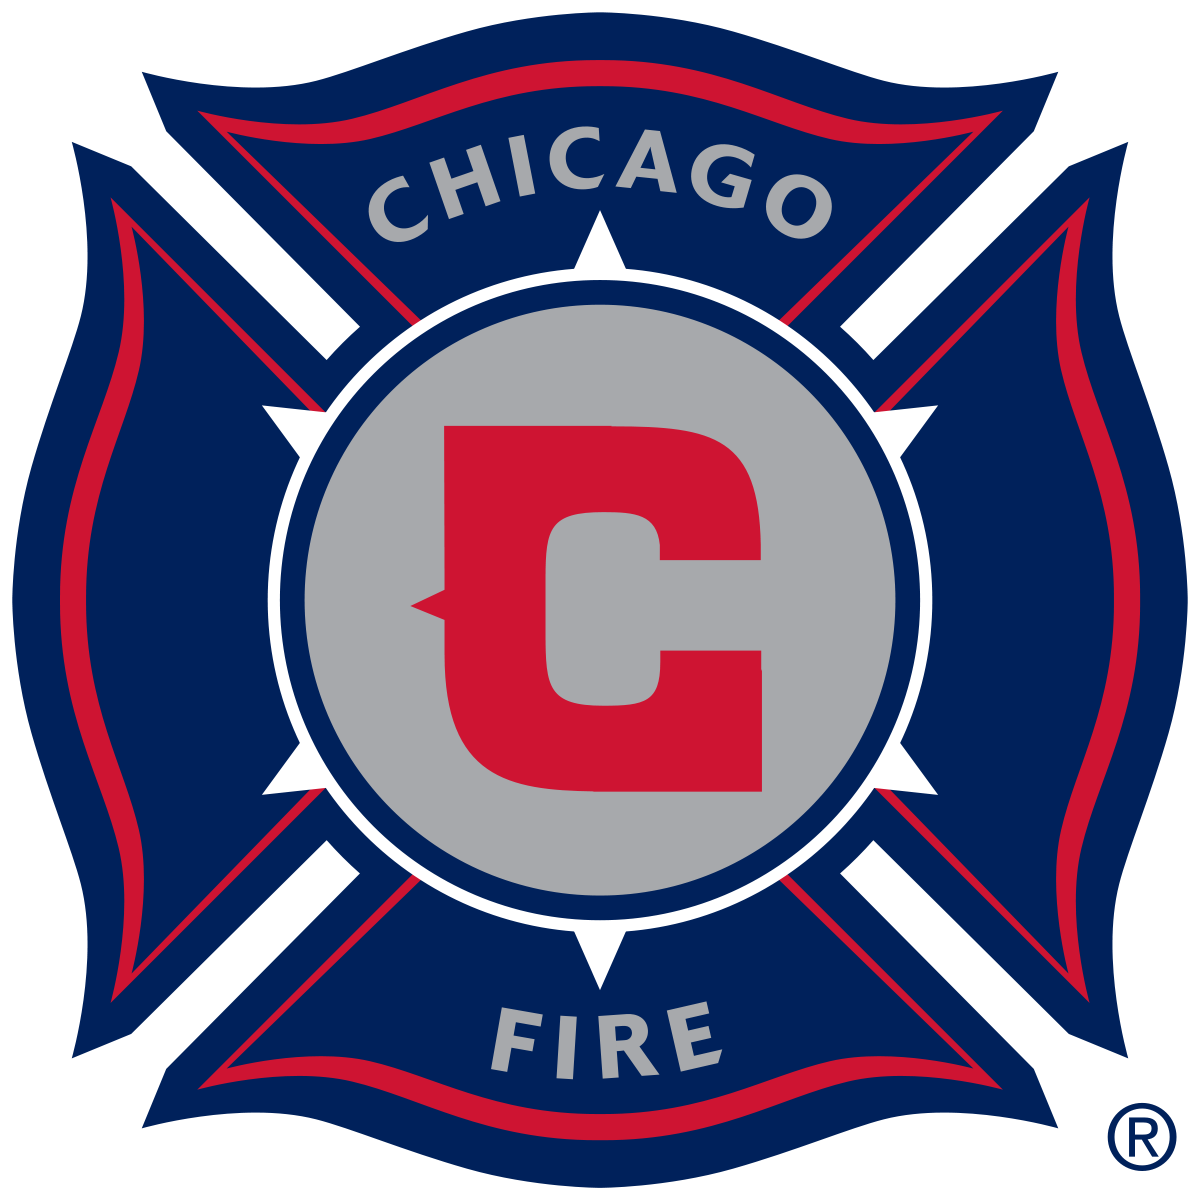 Chicago Fire logo gamewatch.info